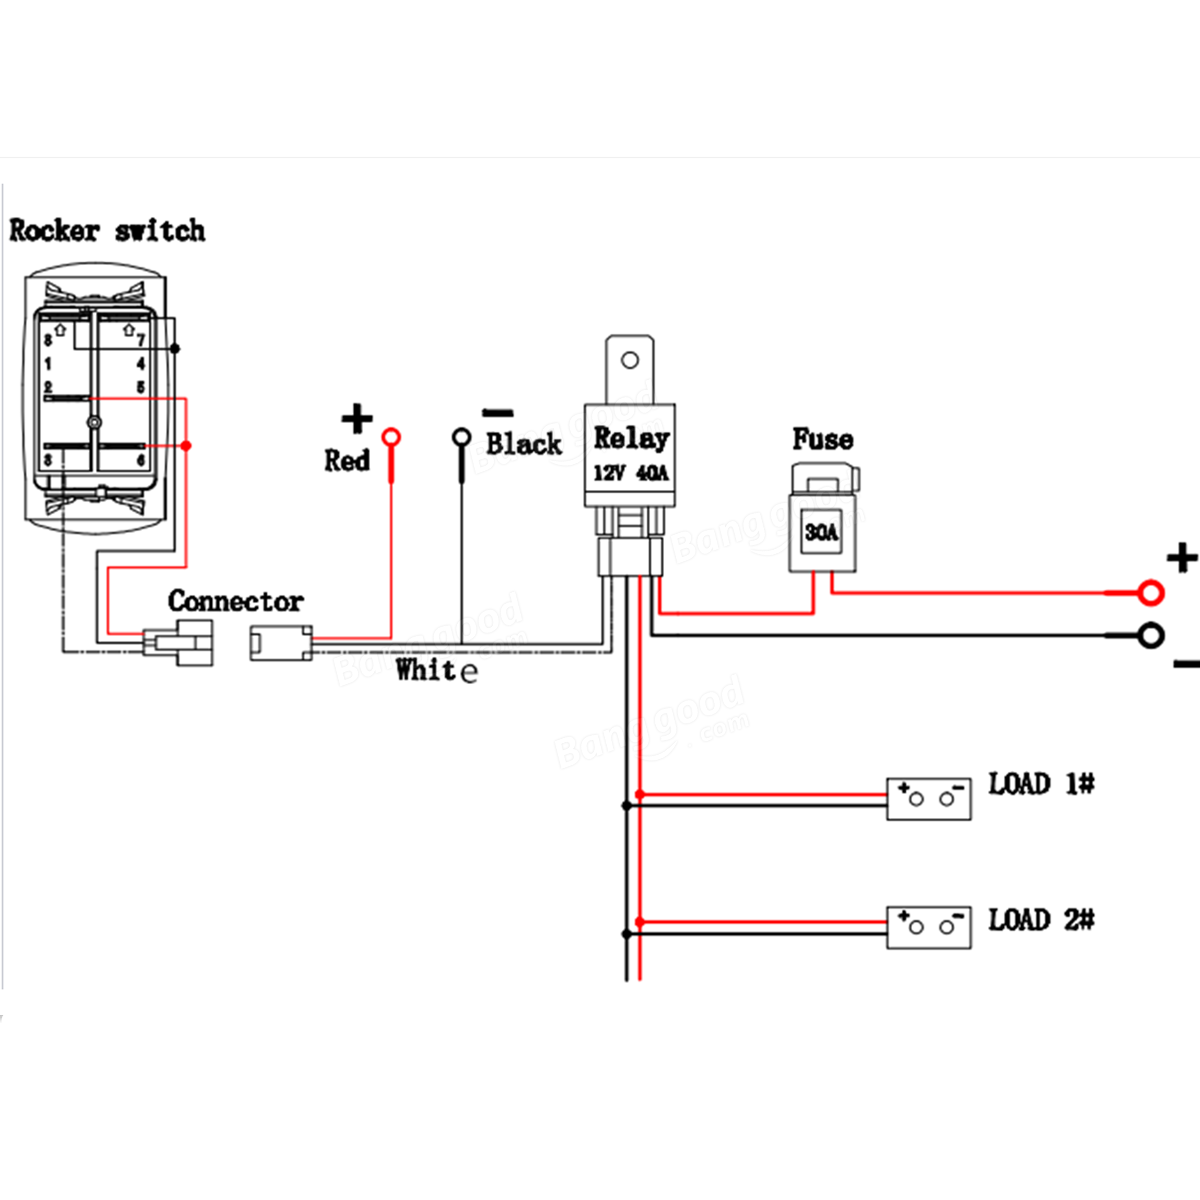 9d6bacef 8f68 448c b477 28191a6abe22 12 v 40a wiring harness 1990 toyota pickup wiring harness \u2022 wiring 12vdc relay wiring diagram at webbmarketing.co